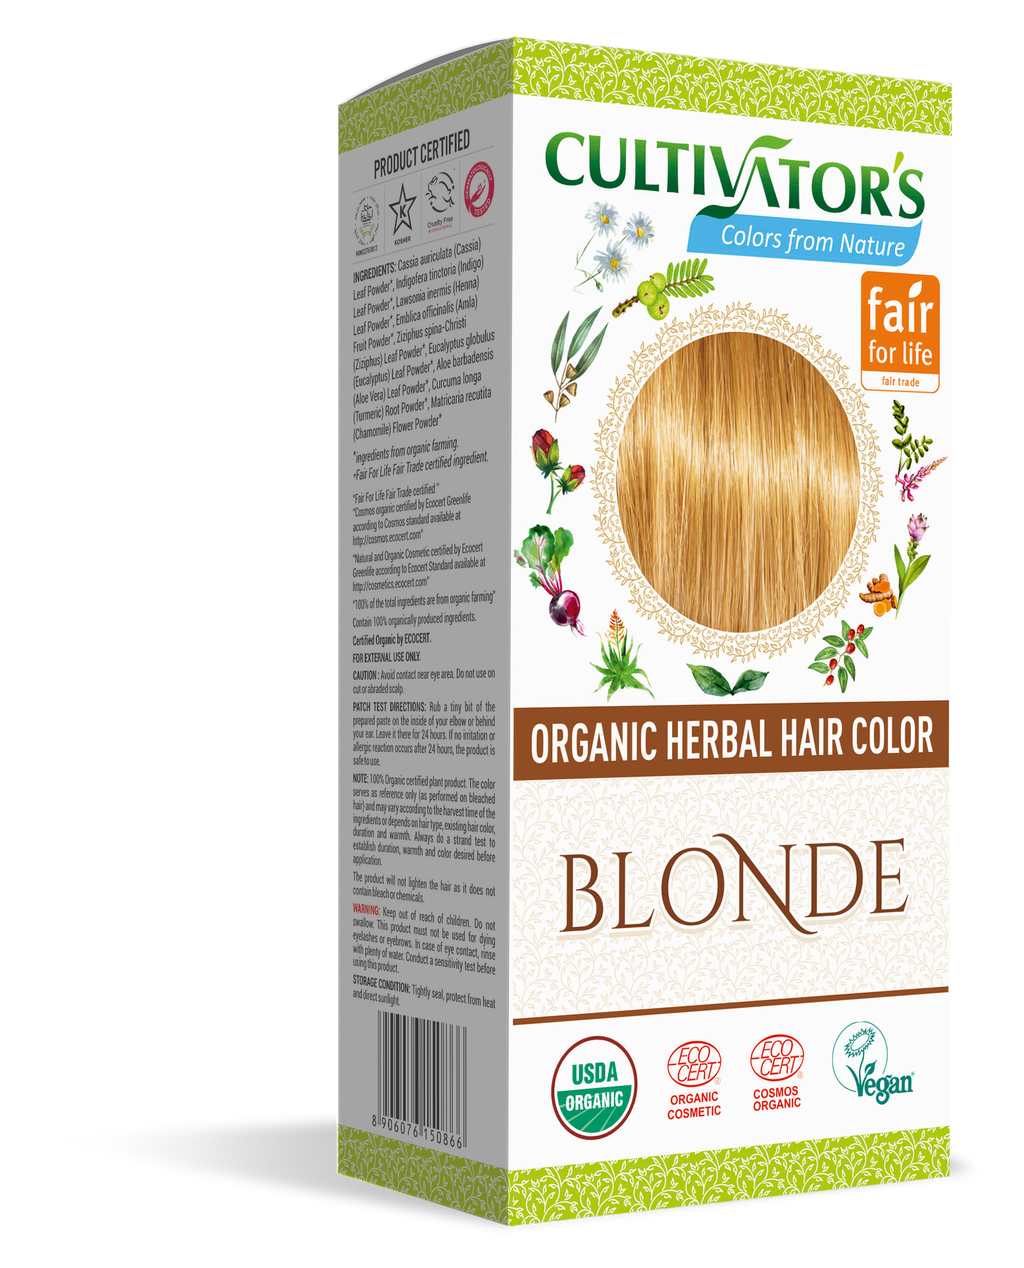 Order Online | Cultivator's Organic Herbal Hair Color Blonde